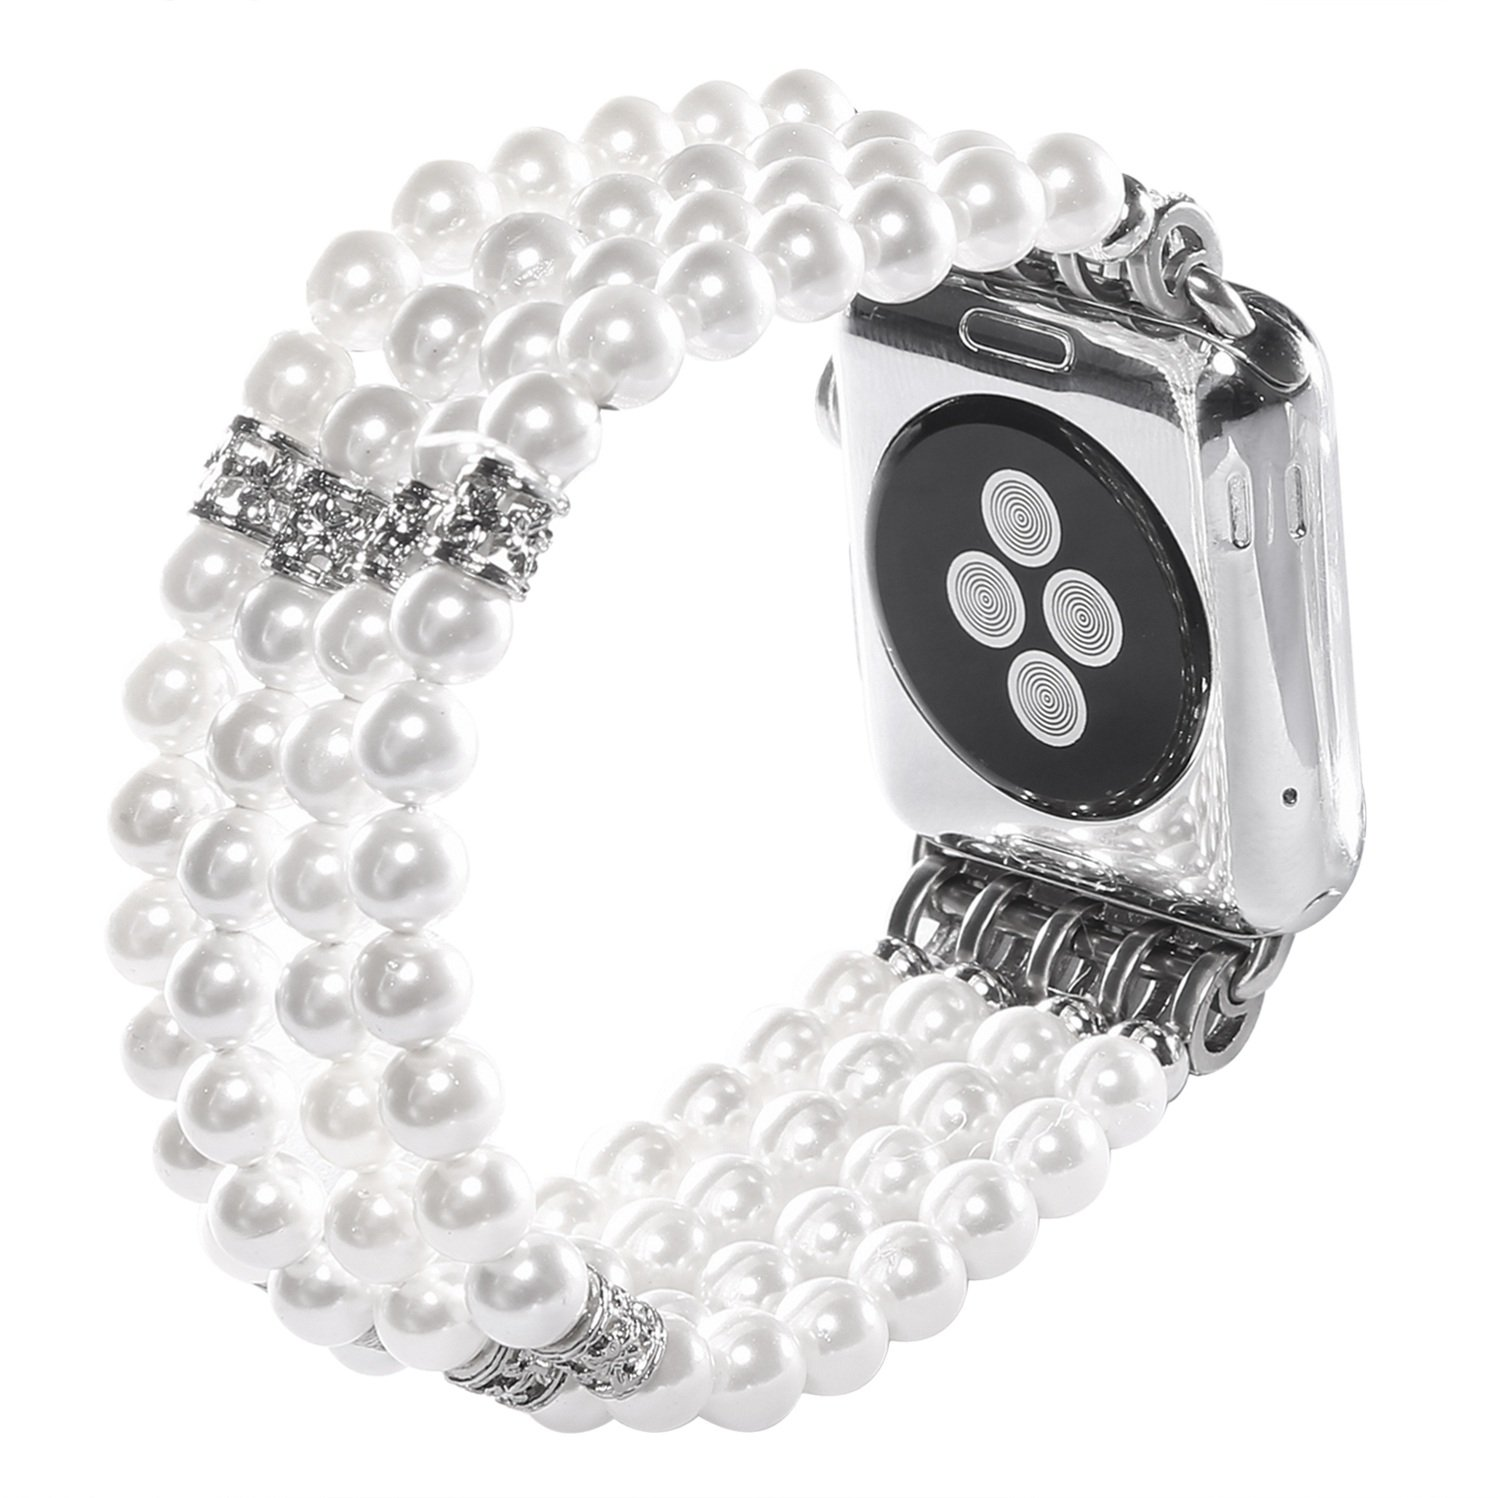 Juzzhou Band For Apple Watch iWatch Series 1/2/3 Replacement Bracelet Handmade Beaded Faux Pearl Natural Bling Stone Crystal Agate Jewels Elastic Stretch Wrist Strap Wristband Wriststrap White 38mm by Juzzhou (Image #3)